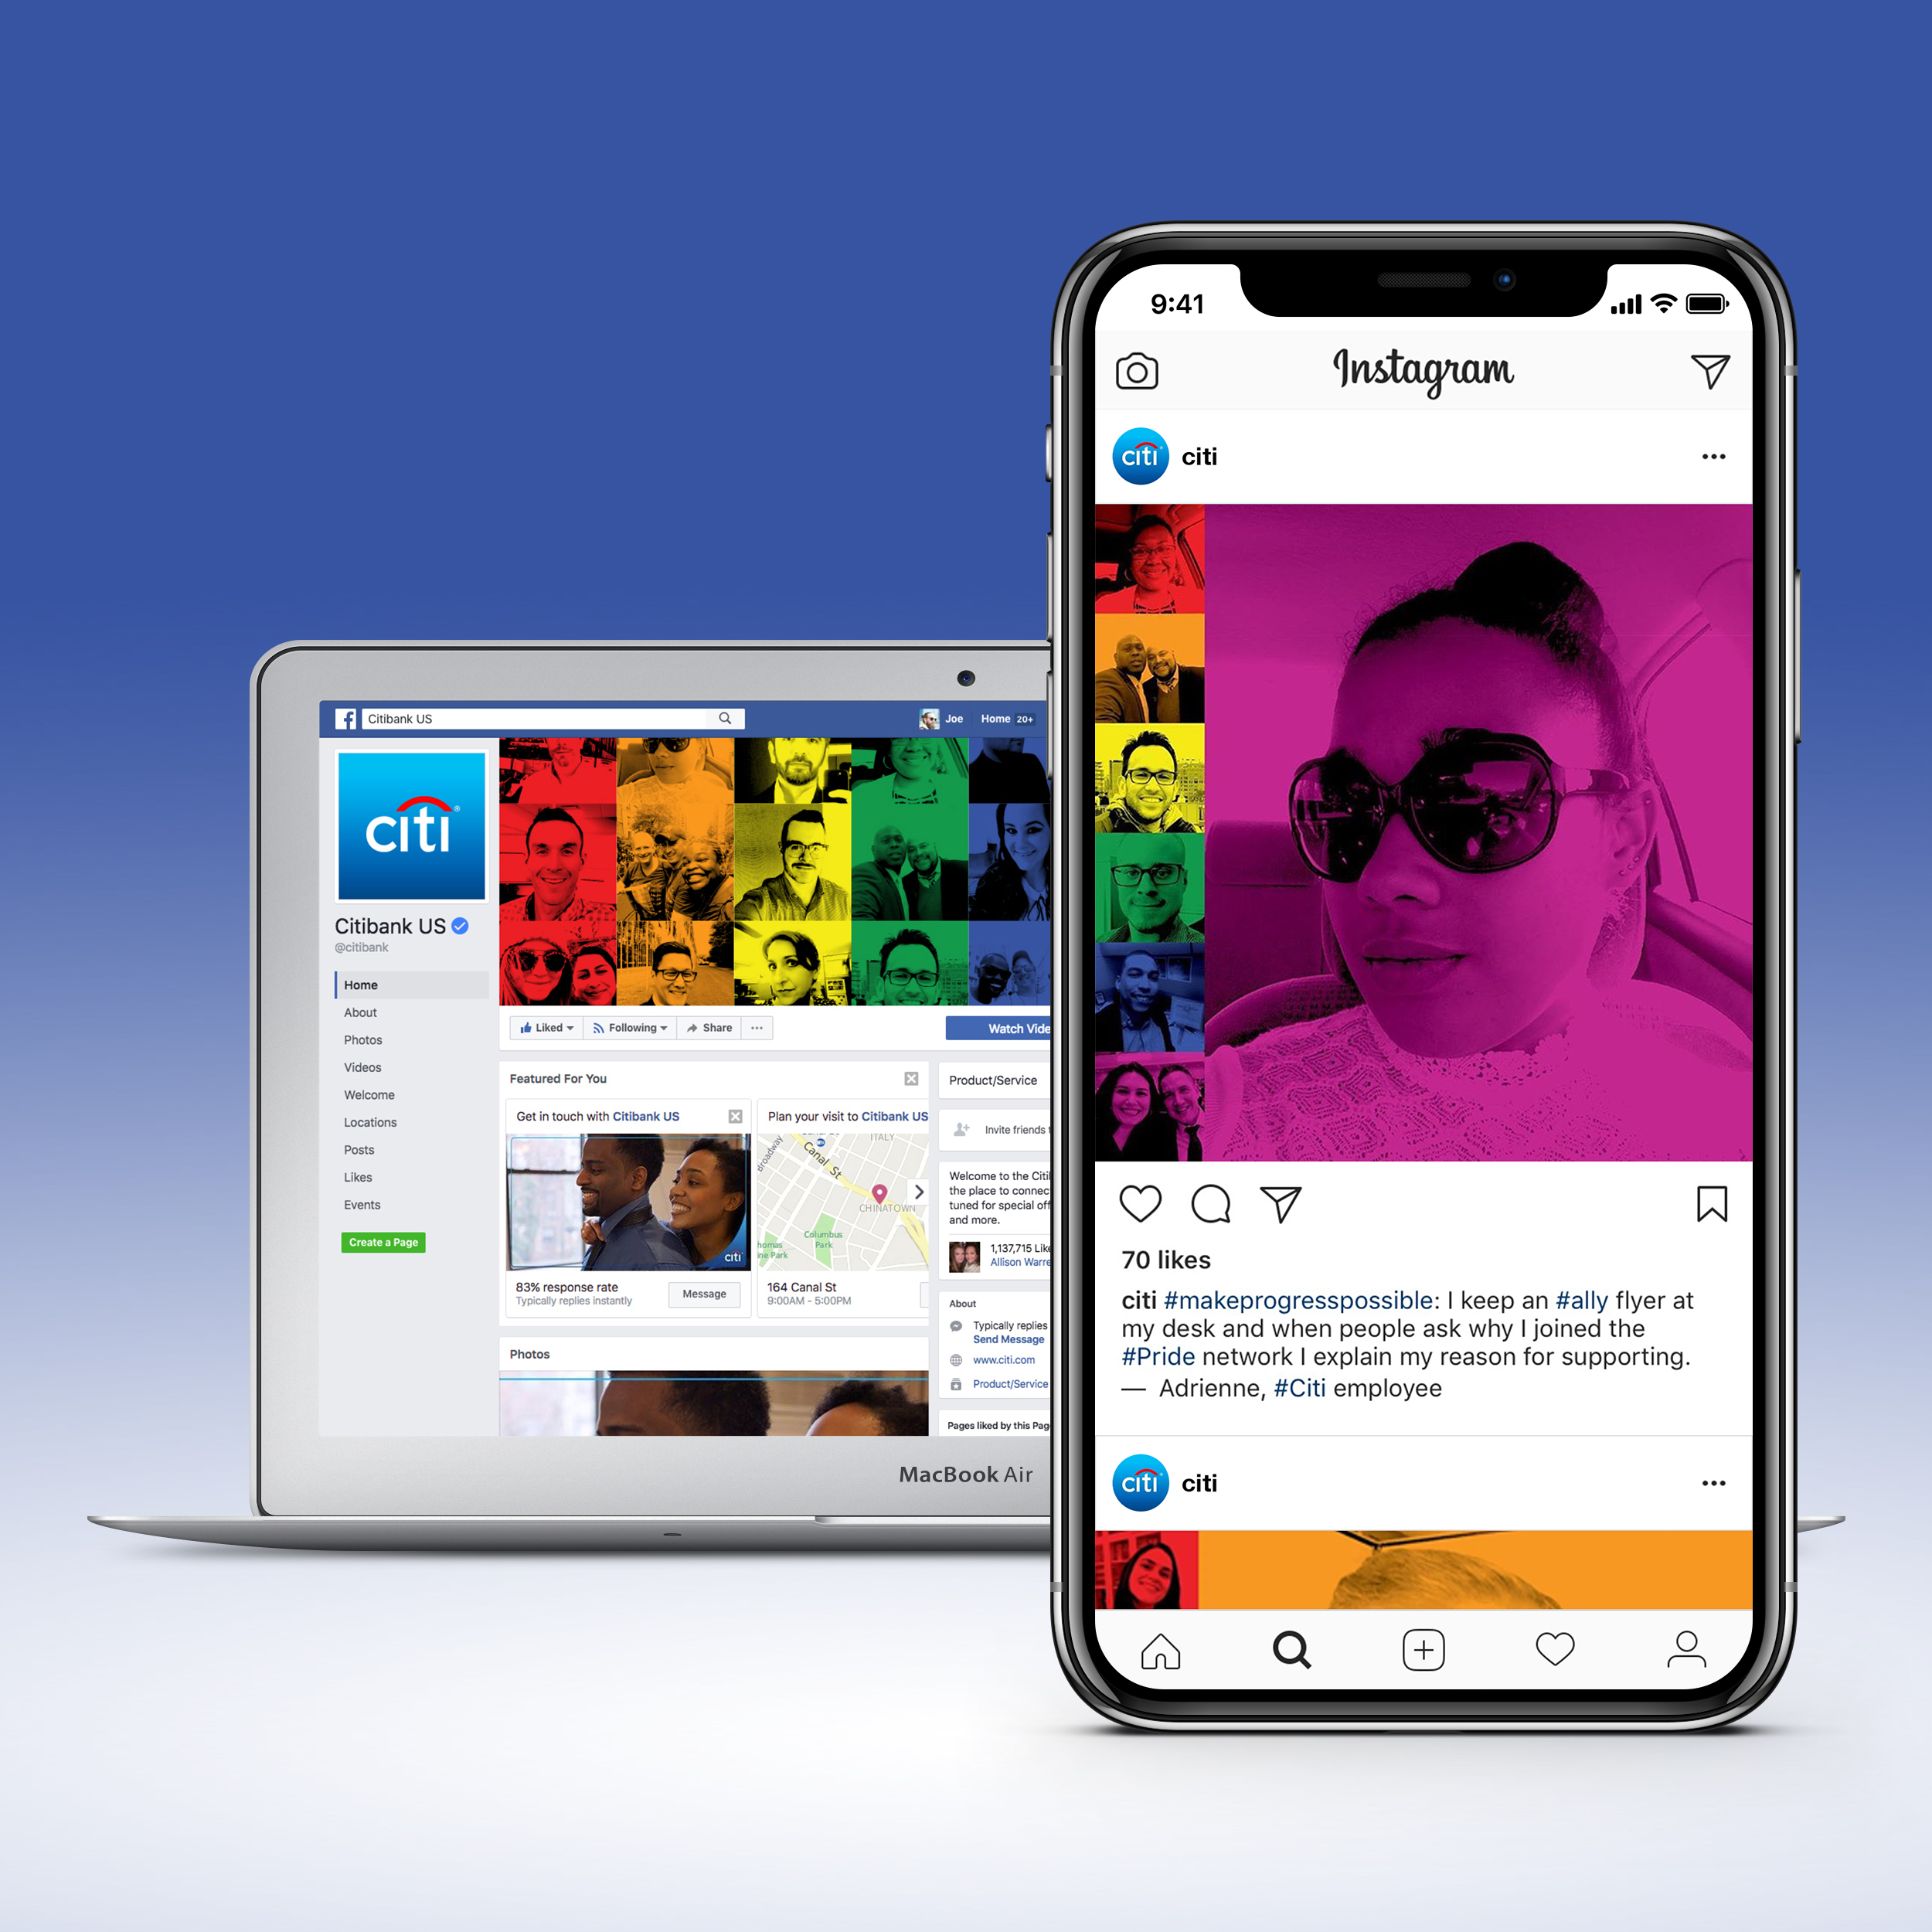 Social - Citi employees that shared their selfies for the original photo mosaic also told their Pride stories in cheerfully likable Instagram posts.